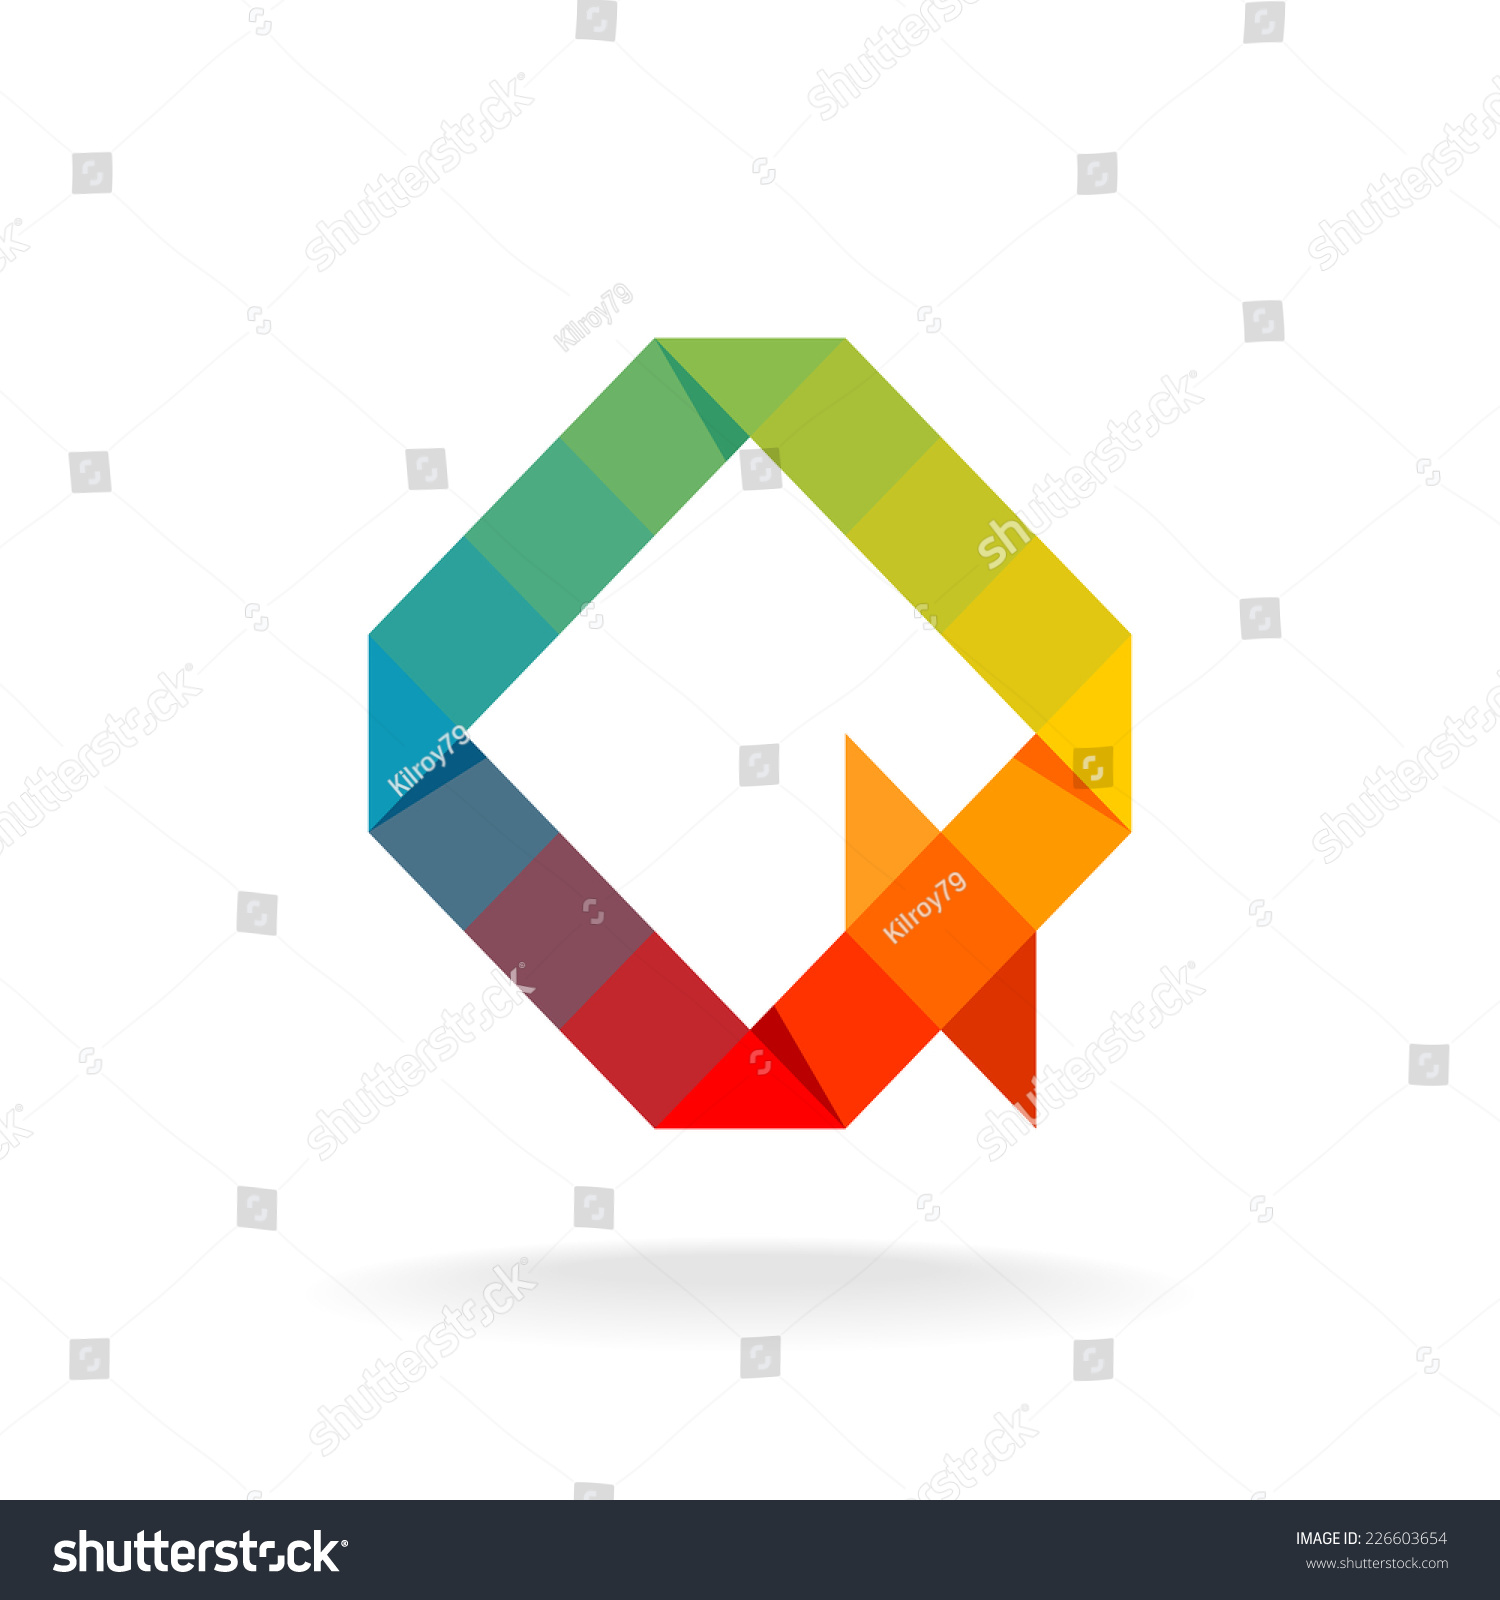 Q letter logo template.Rainbow color flat squares and triangles